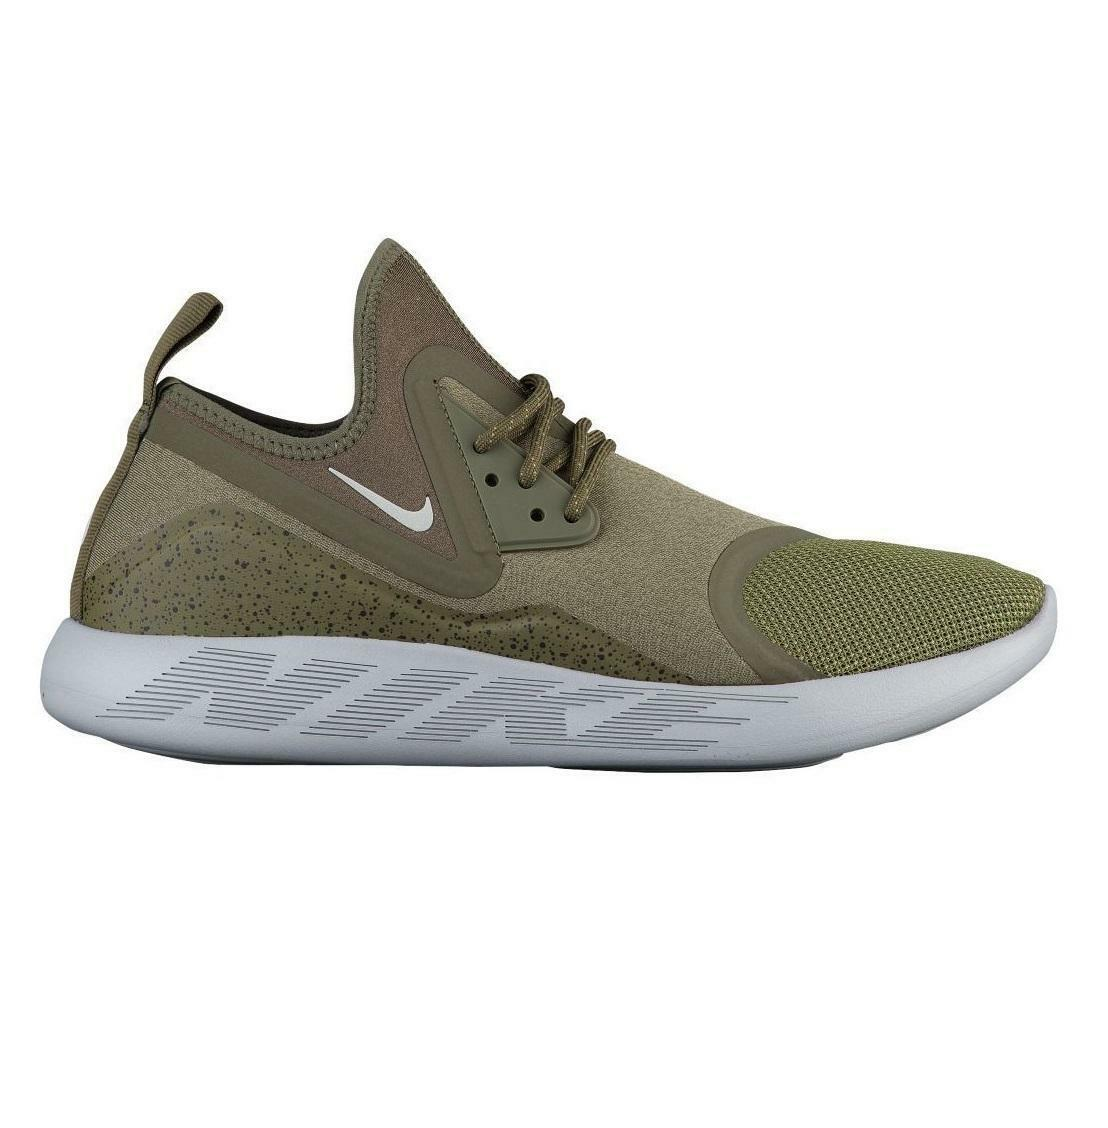 Mens NIKE LUNARCHARGE ESSENTIAL Medium Olive Trainers 923619 200